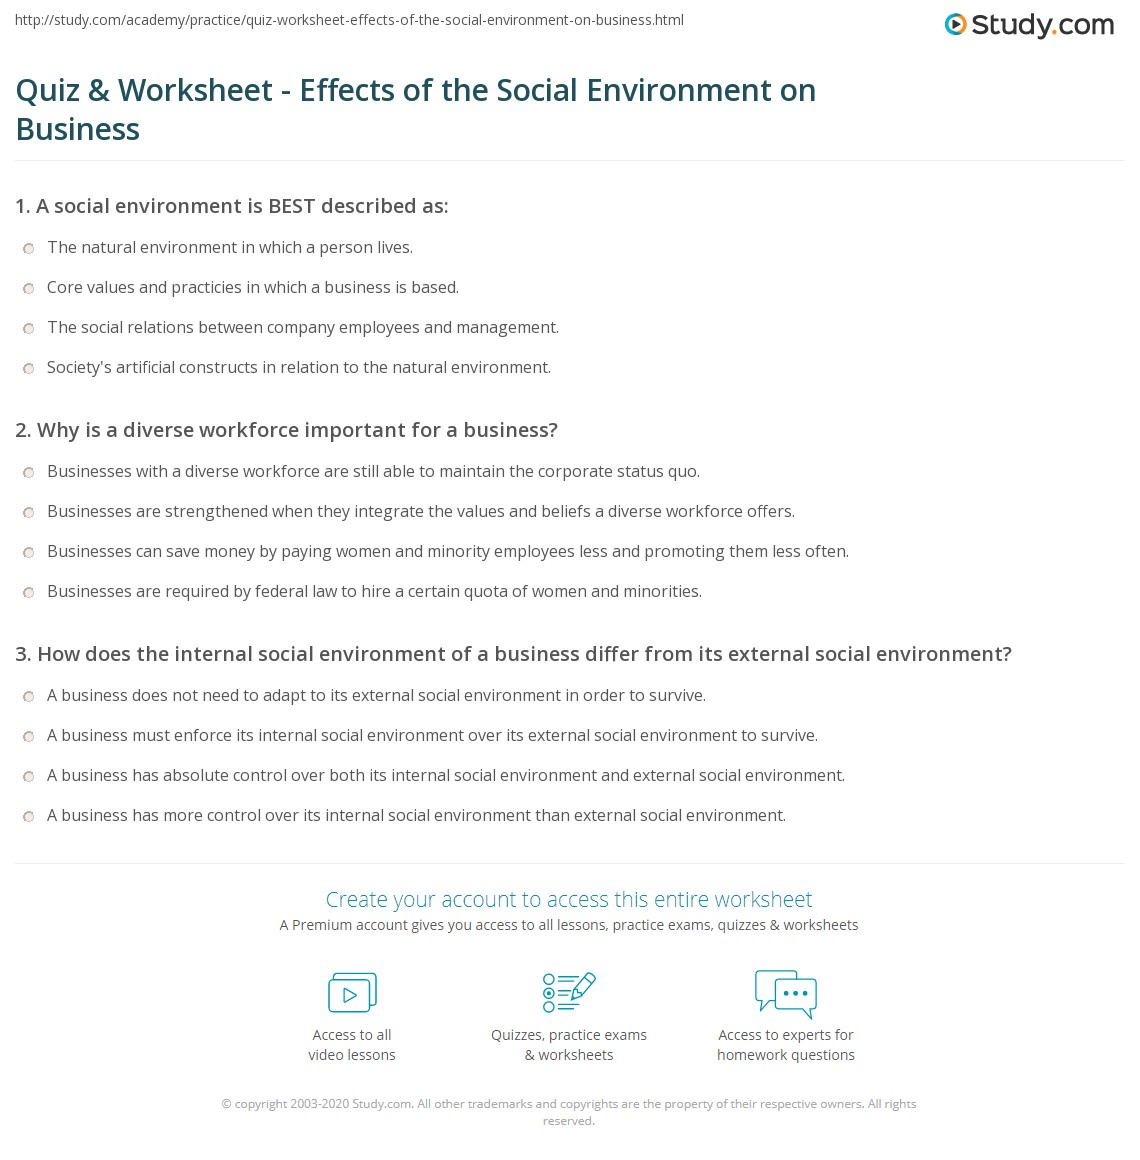 Quiz Worksheet Effects Of The Social Environment On Business